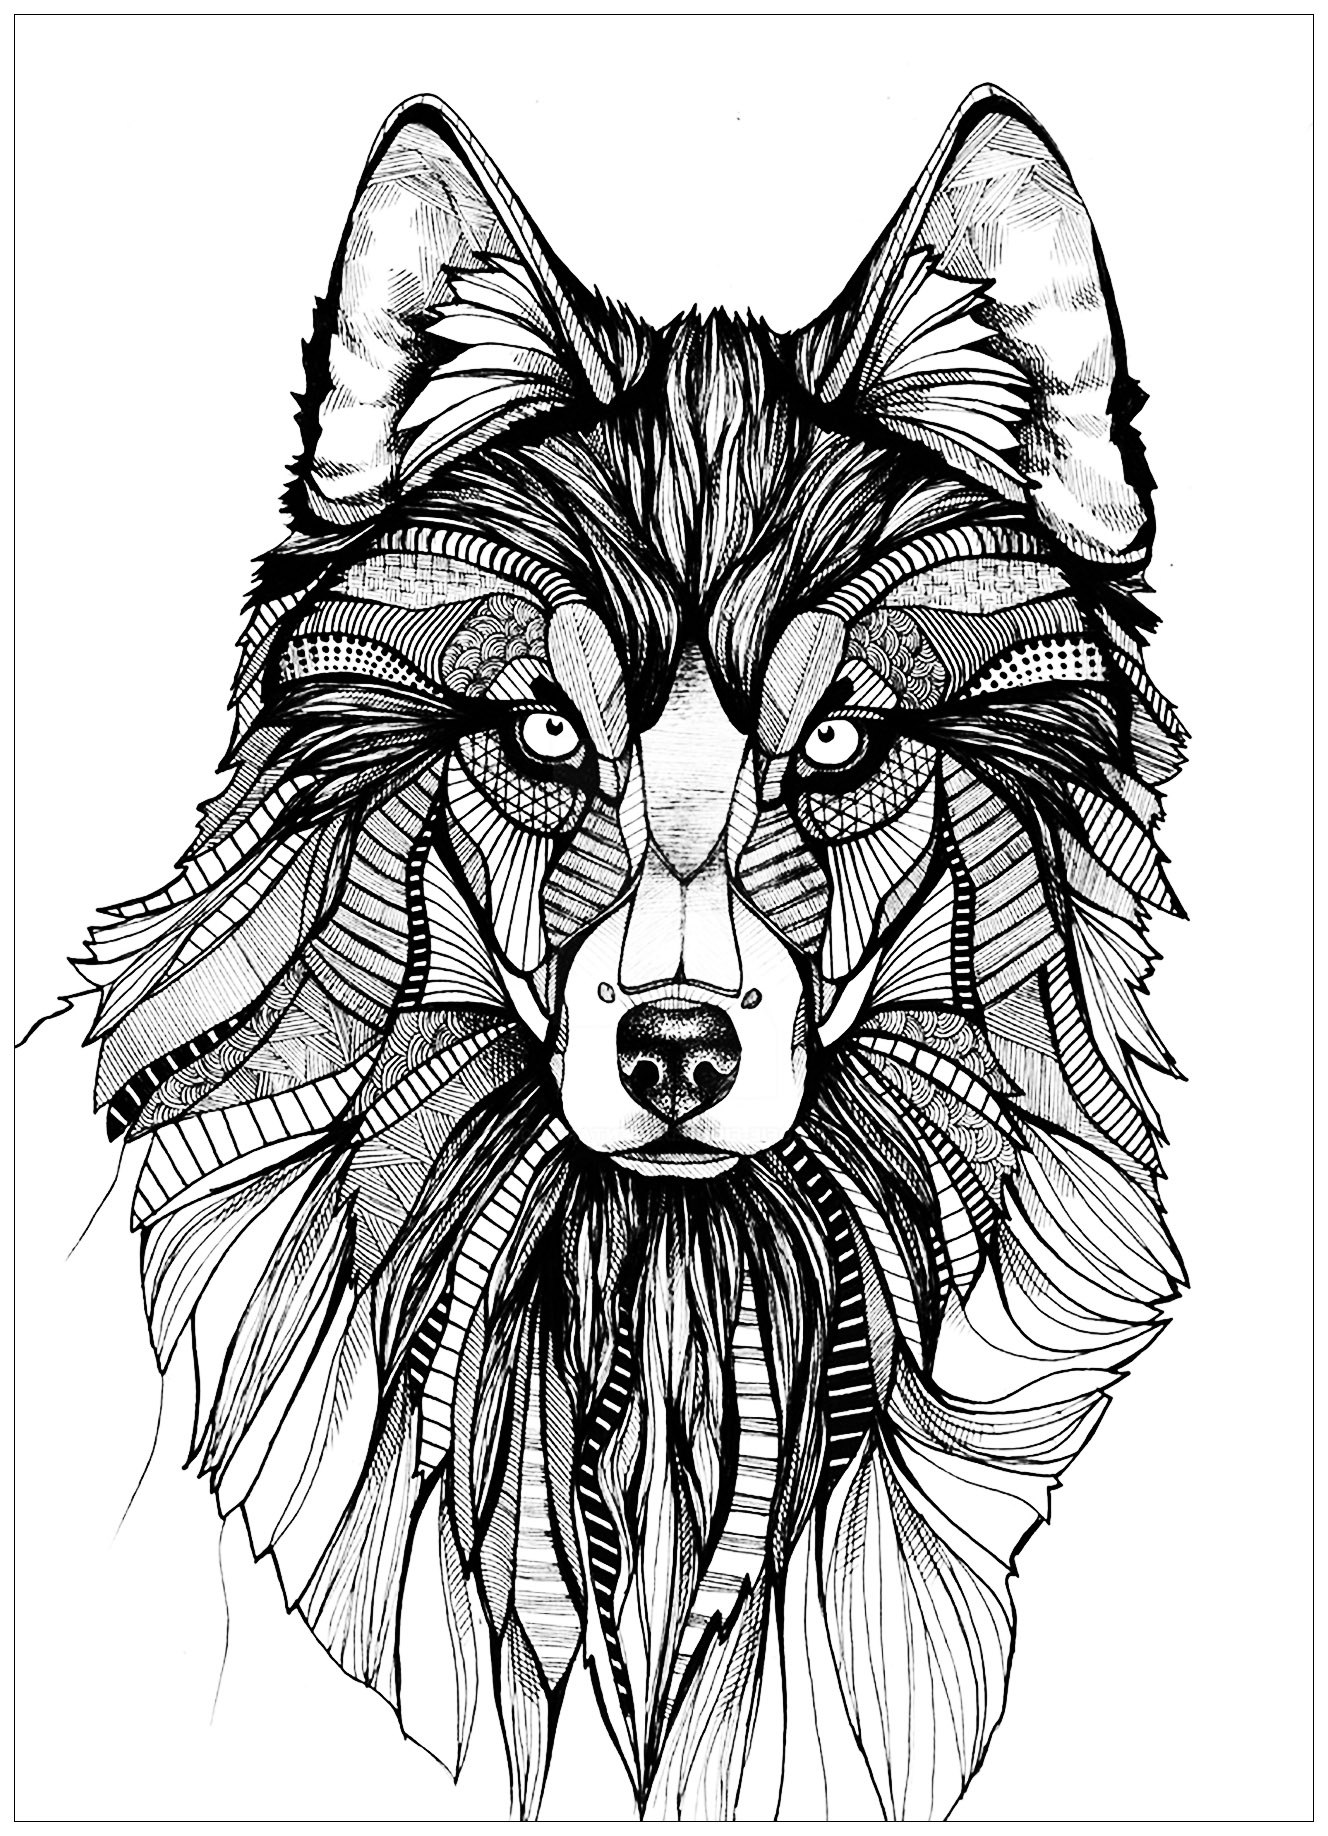 wolf coloring images free printable wolf coloring pages for kids animal place images coloring wolf